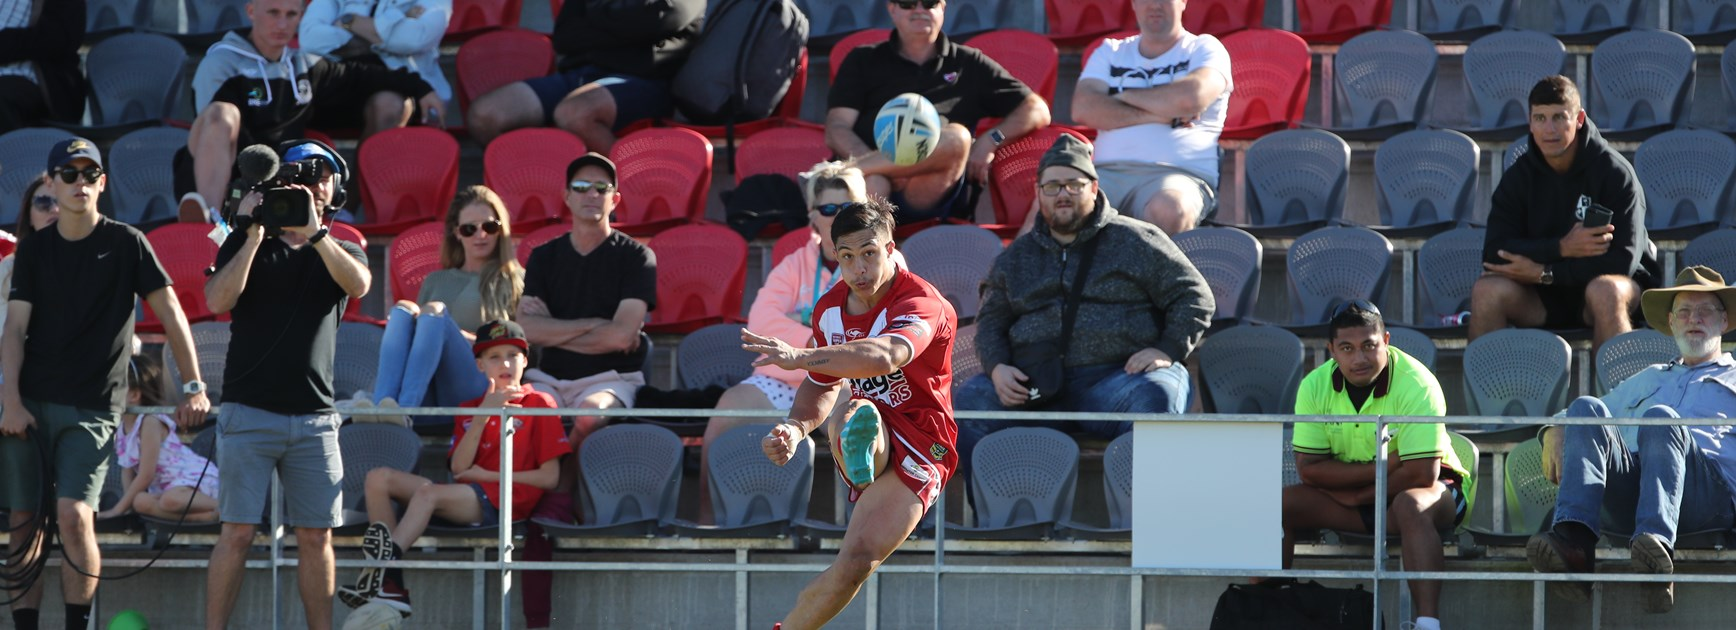 Dolphins firm for top spot in ladder jostle